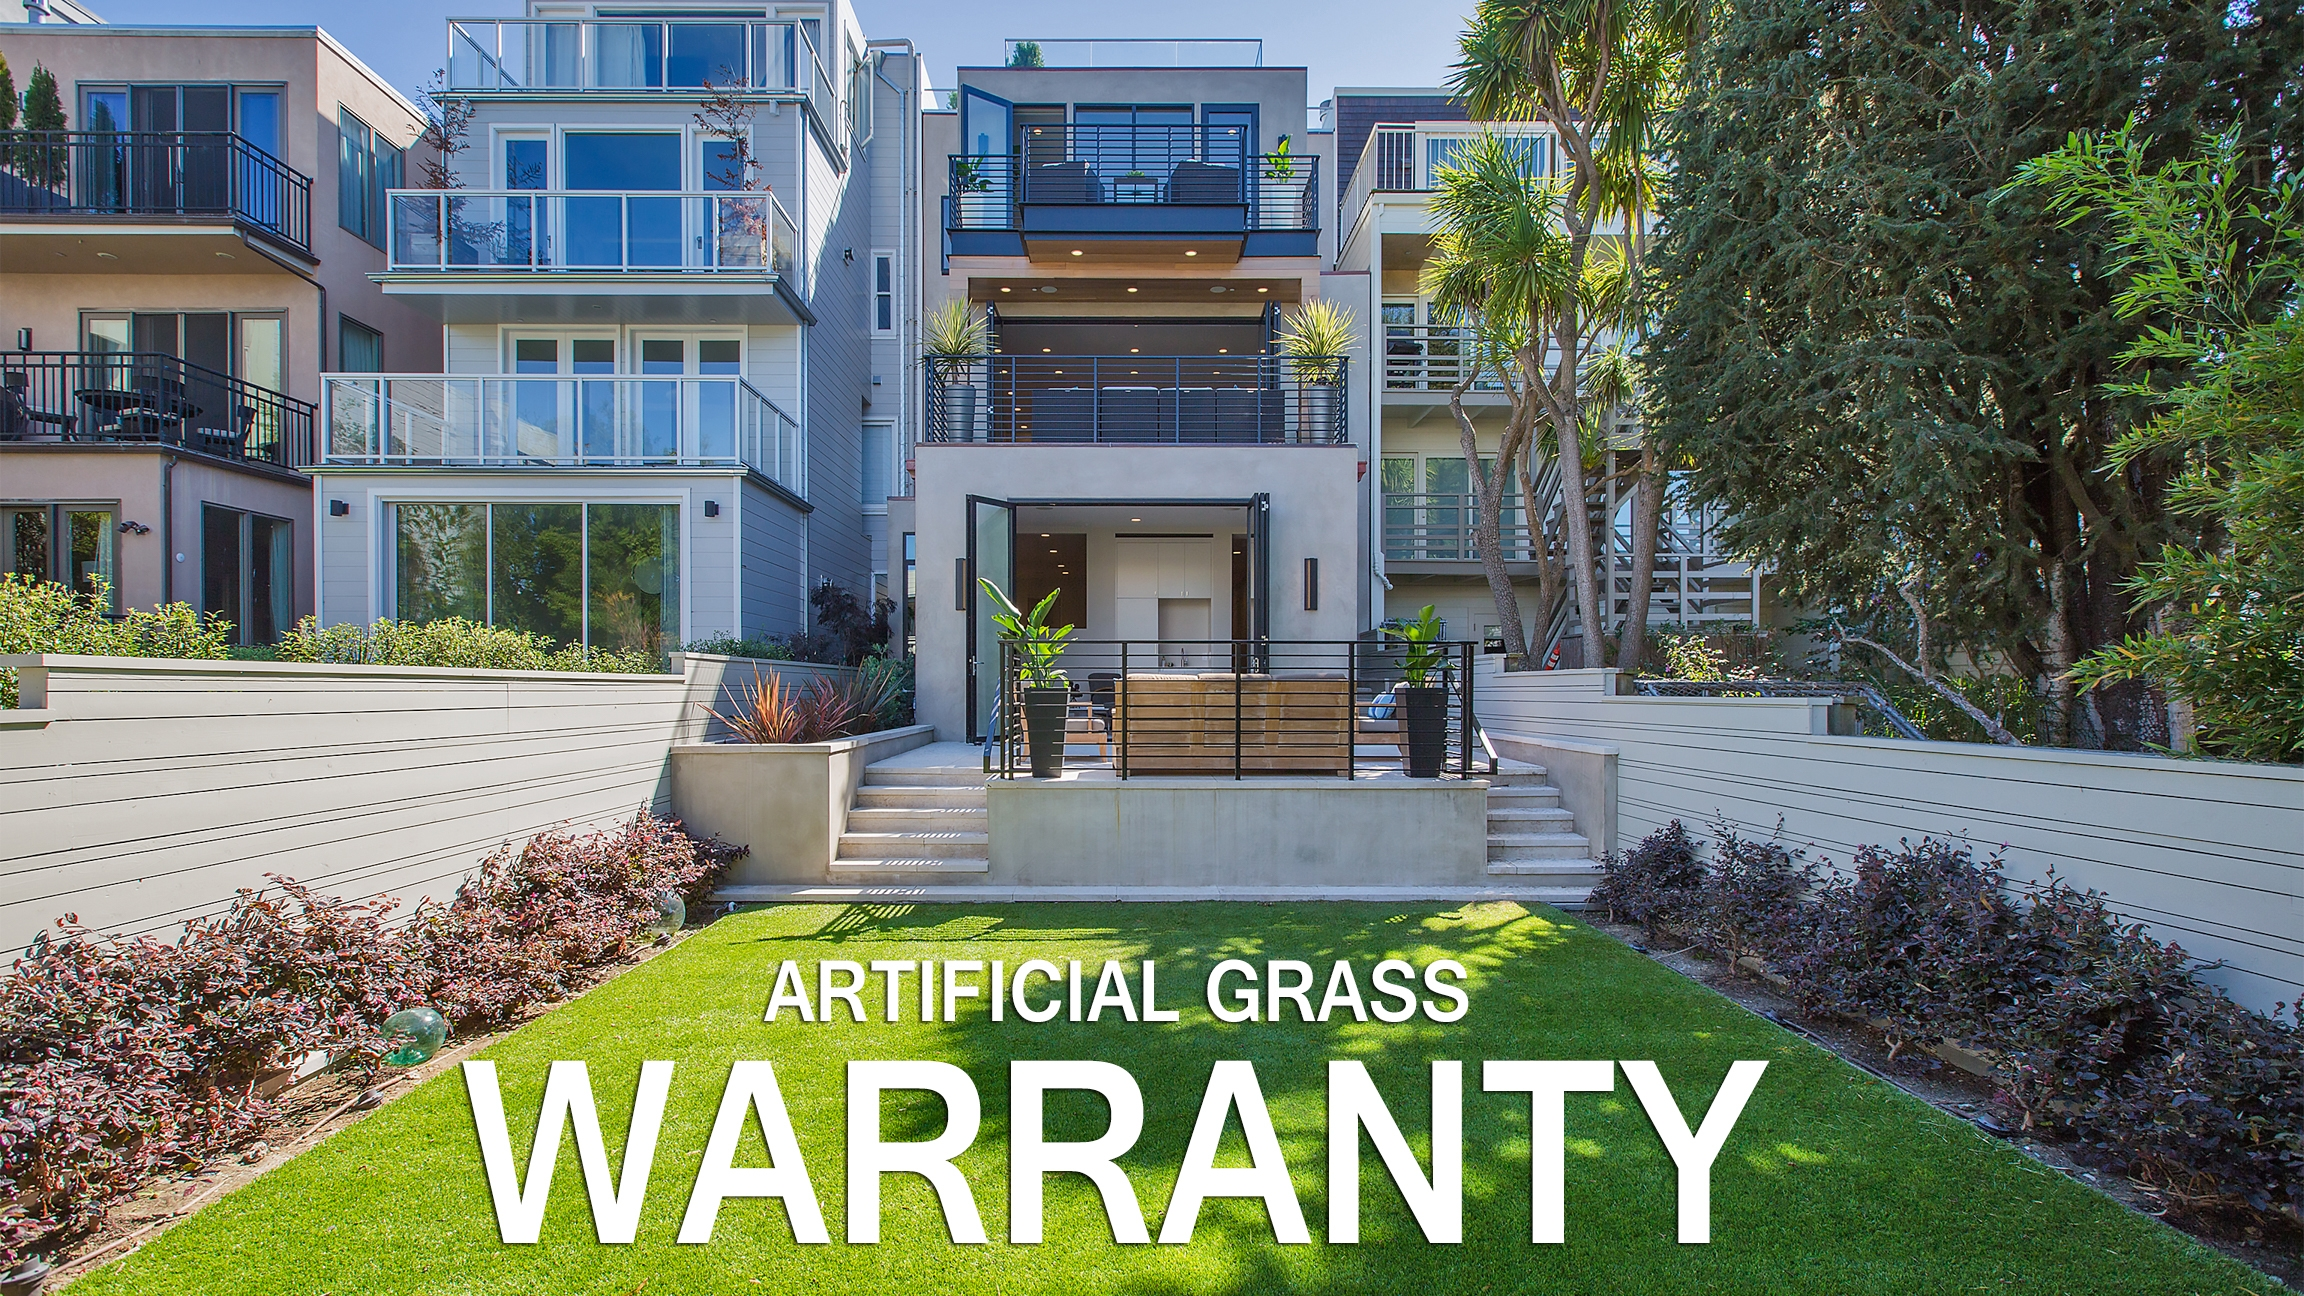 Artificial grass, synthetic turf, warranty